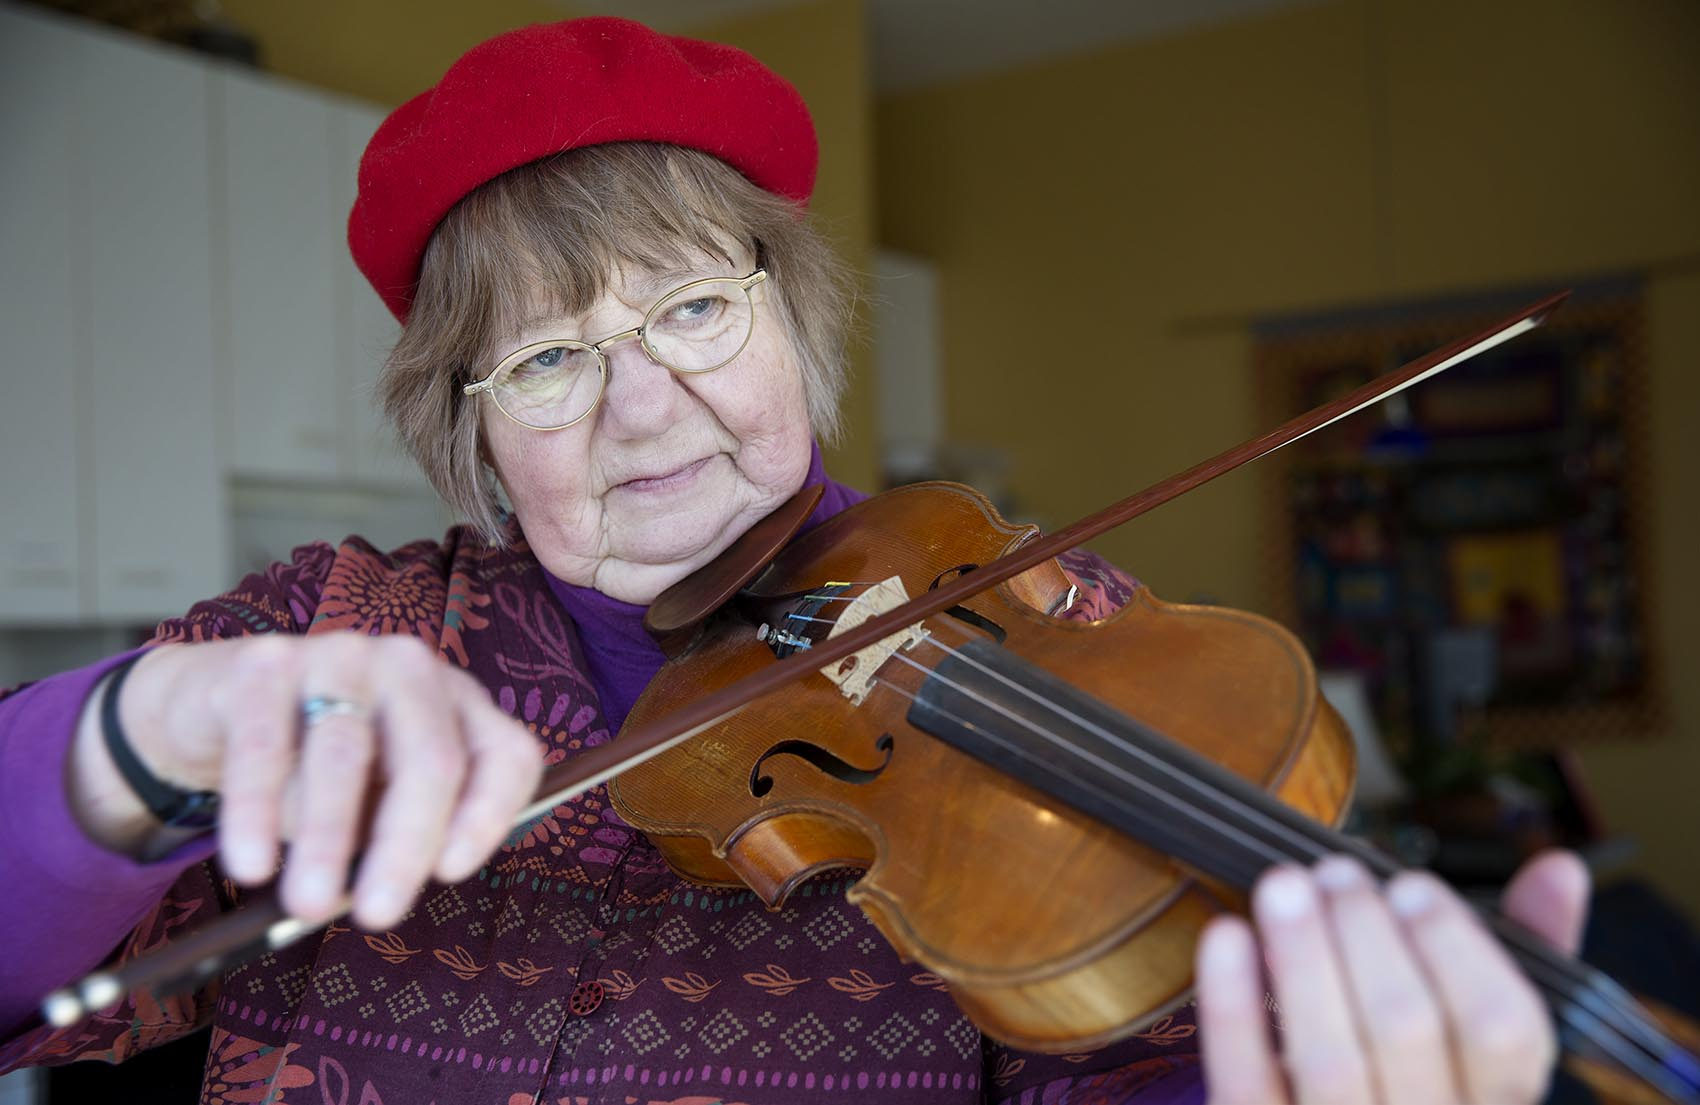 Betty Hauck, a musician suffering from hearing loss, plays her violin at home in Cambridge, Mass. (Robin Lubbock/WBUR)